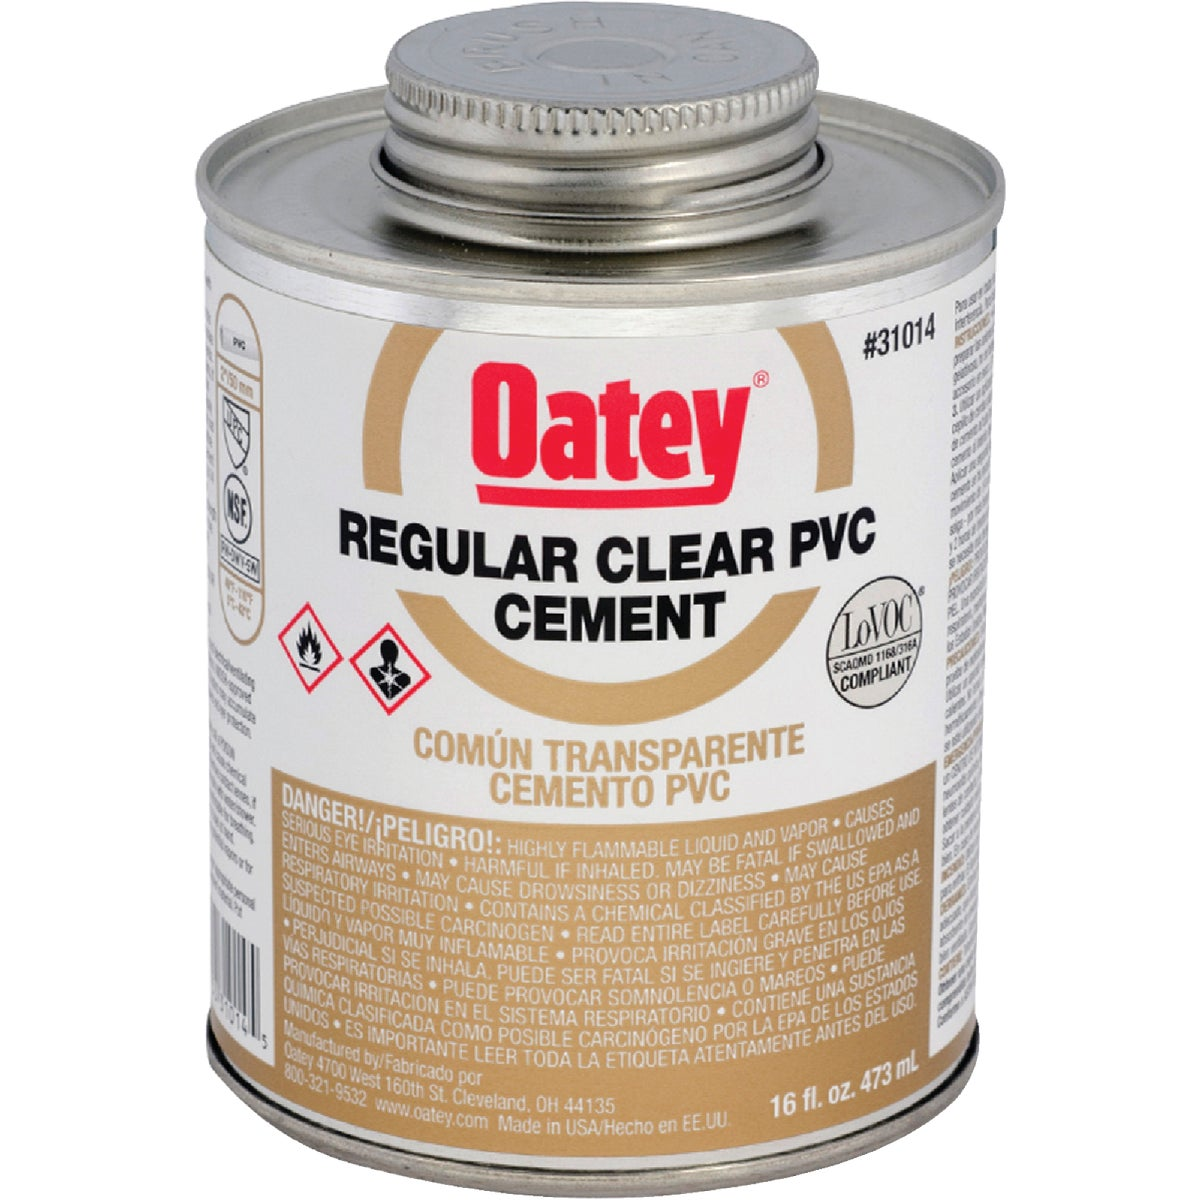 PINT PVC CEMENT - 31014 by Oatey Scs